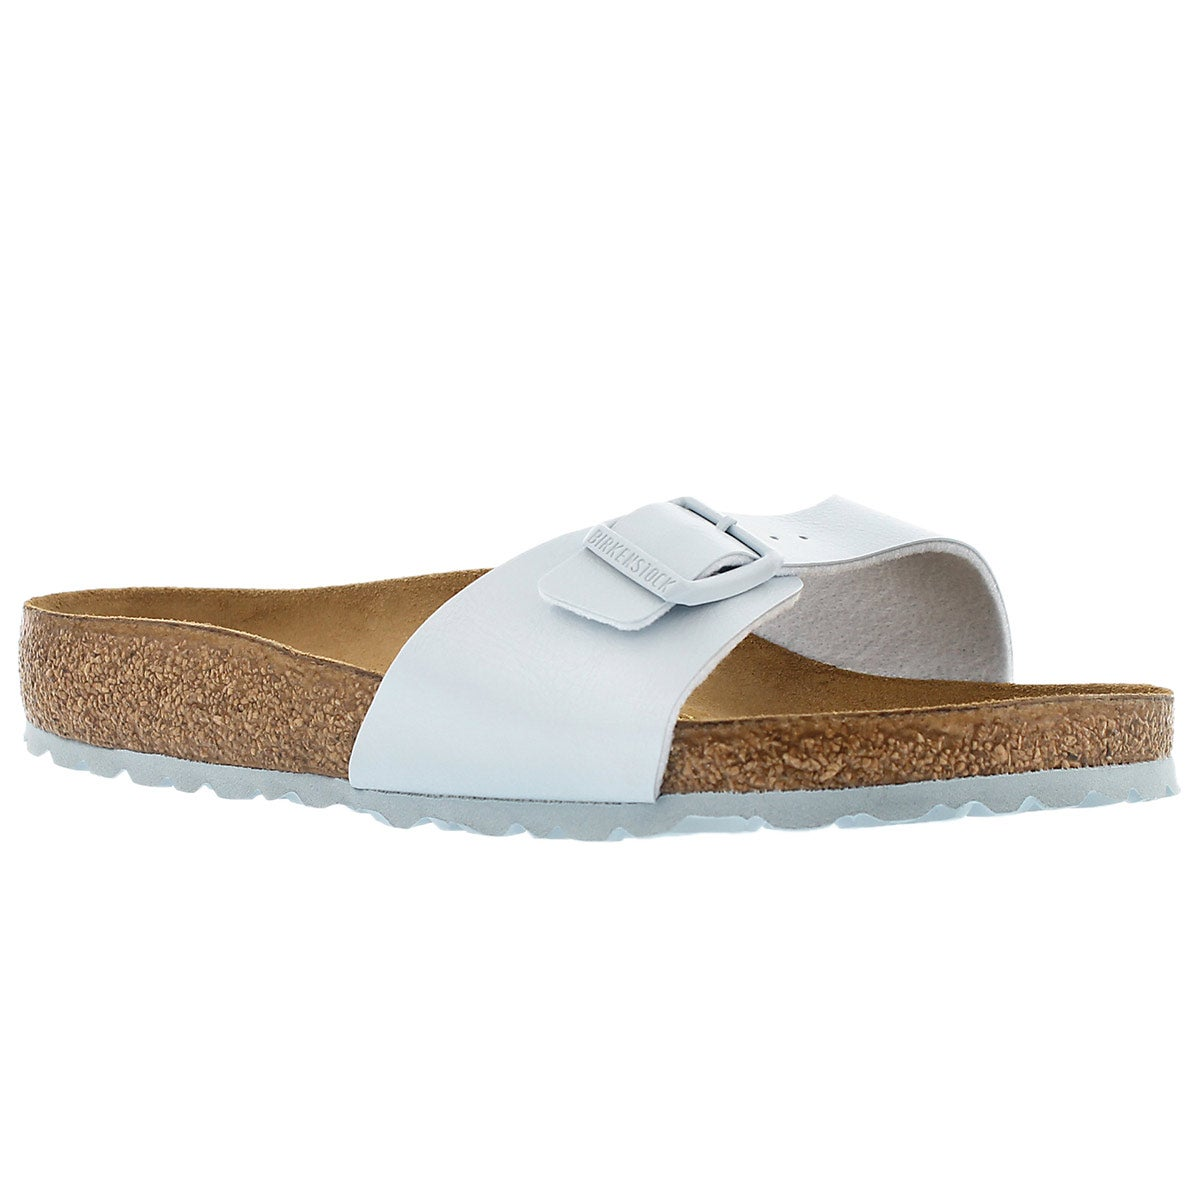 Women's MADRID baby blue single strap sandals